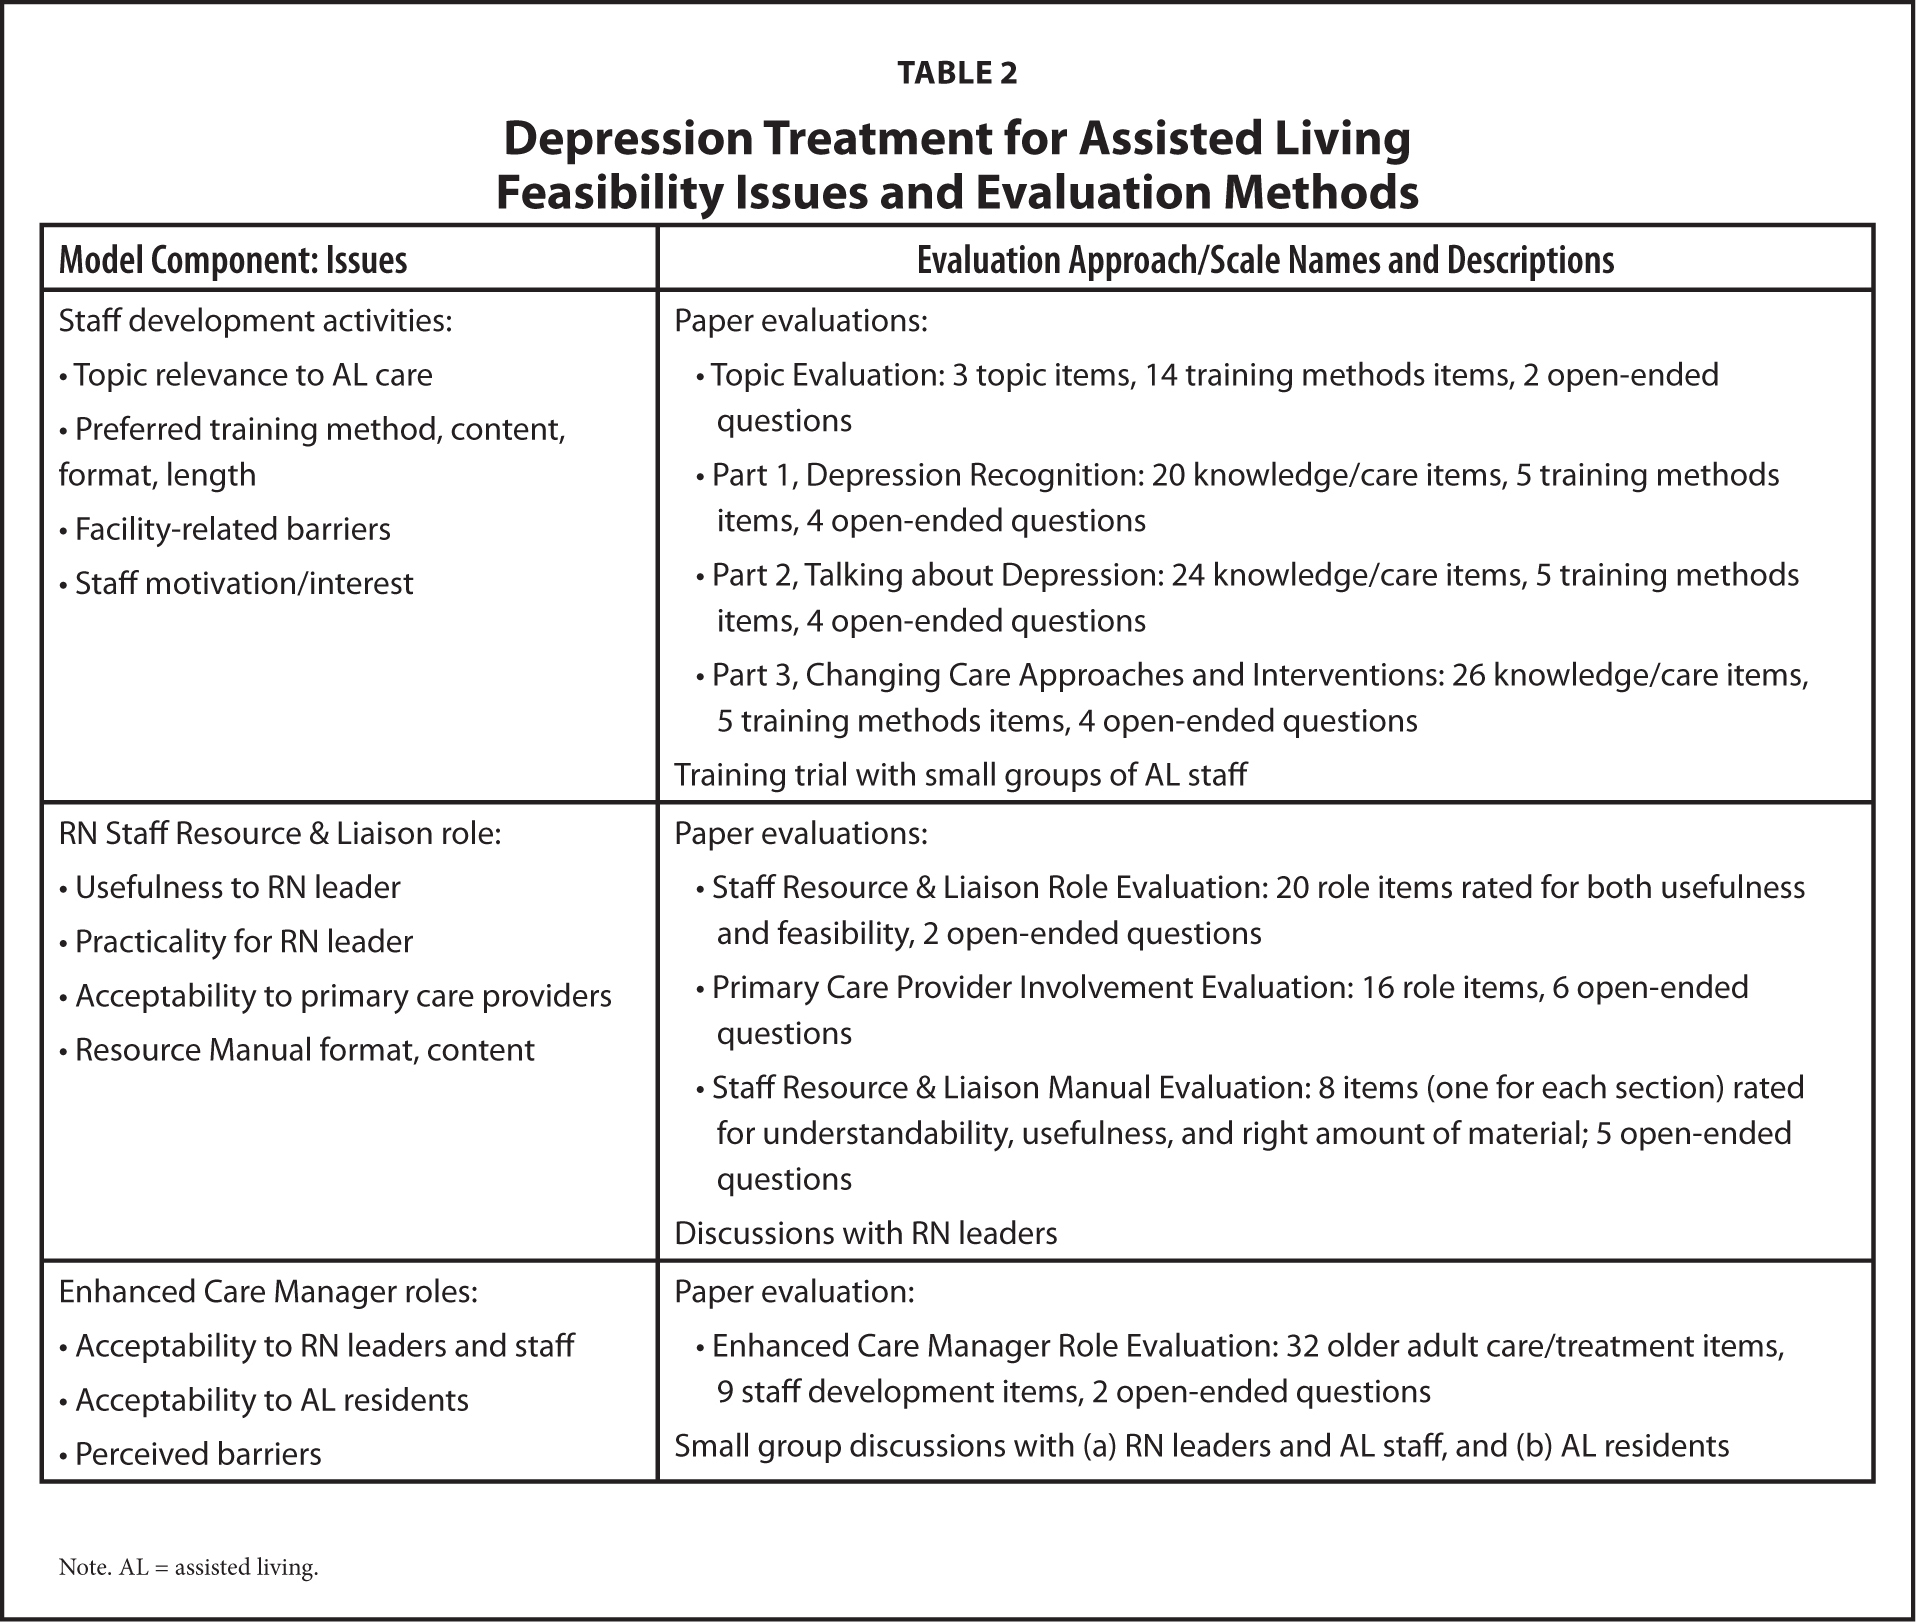 Depression Treatment for Assisted Living Feasibility Issues and Evaluation Methods